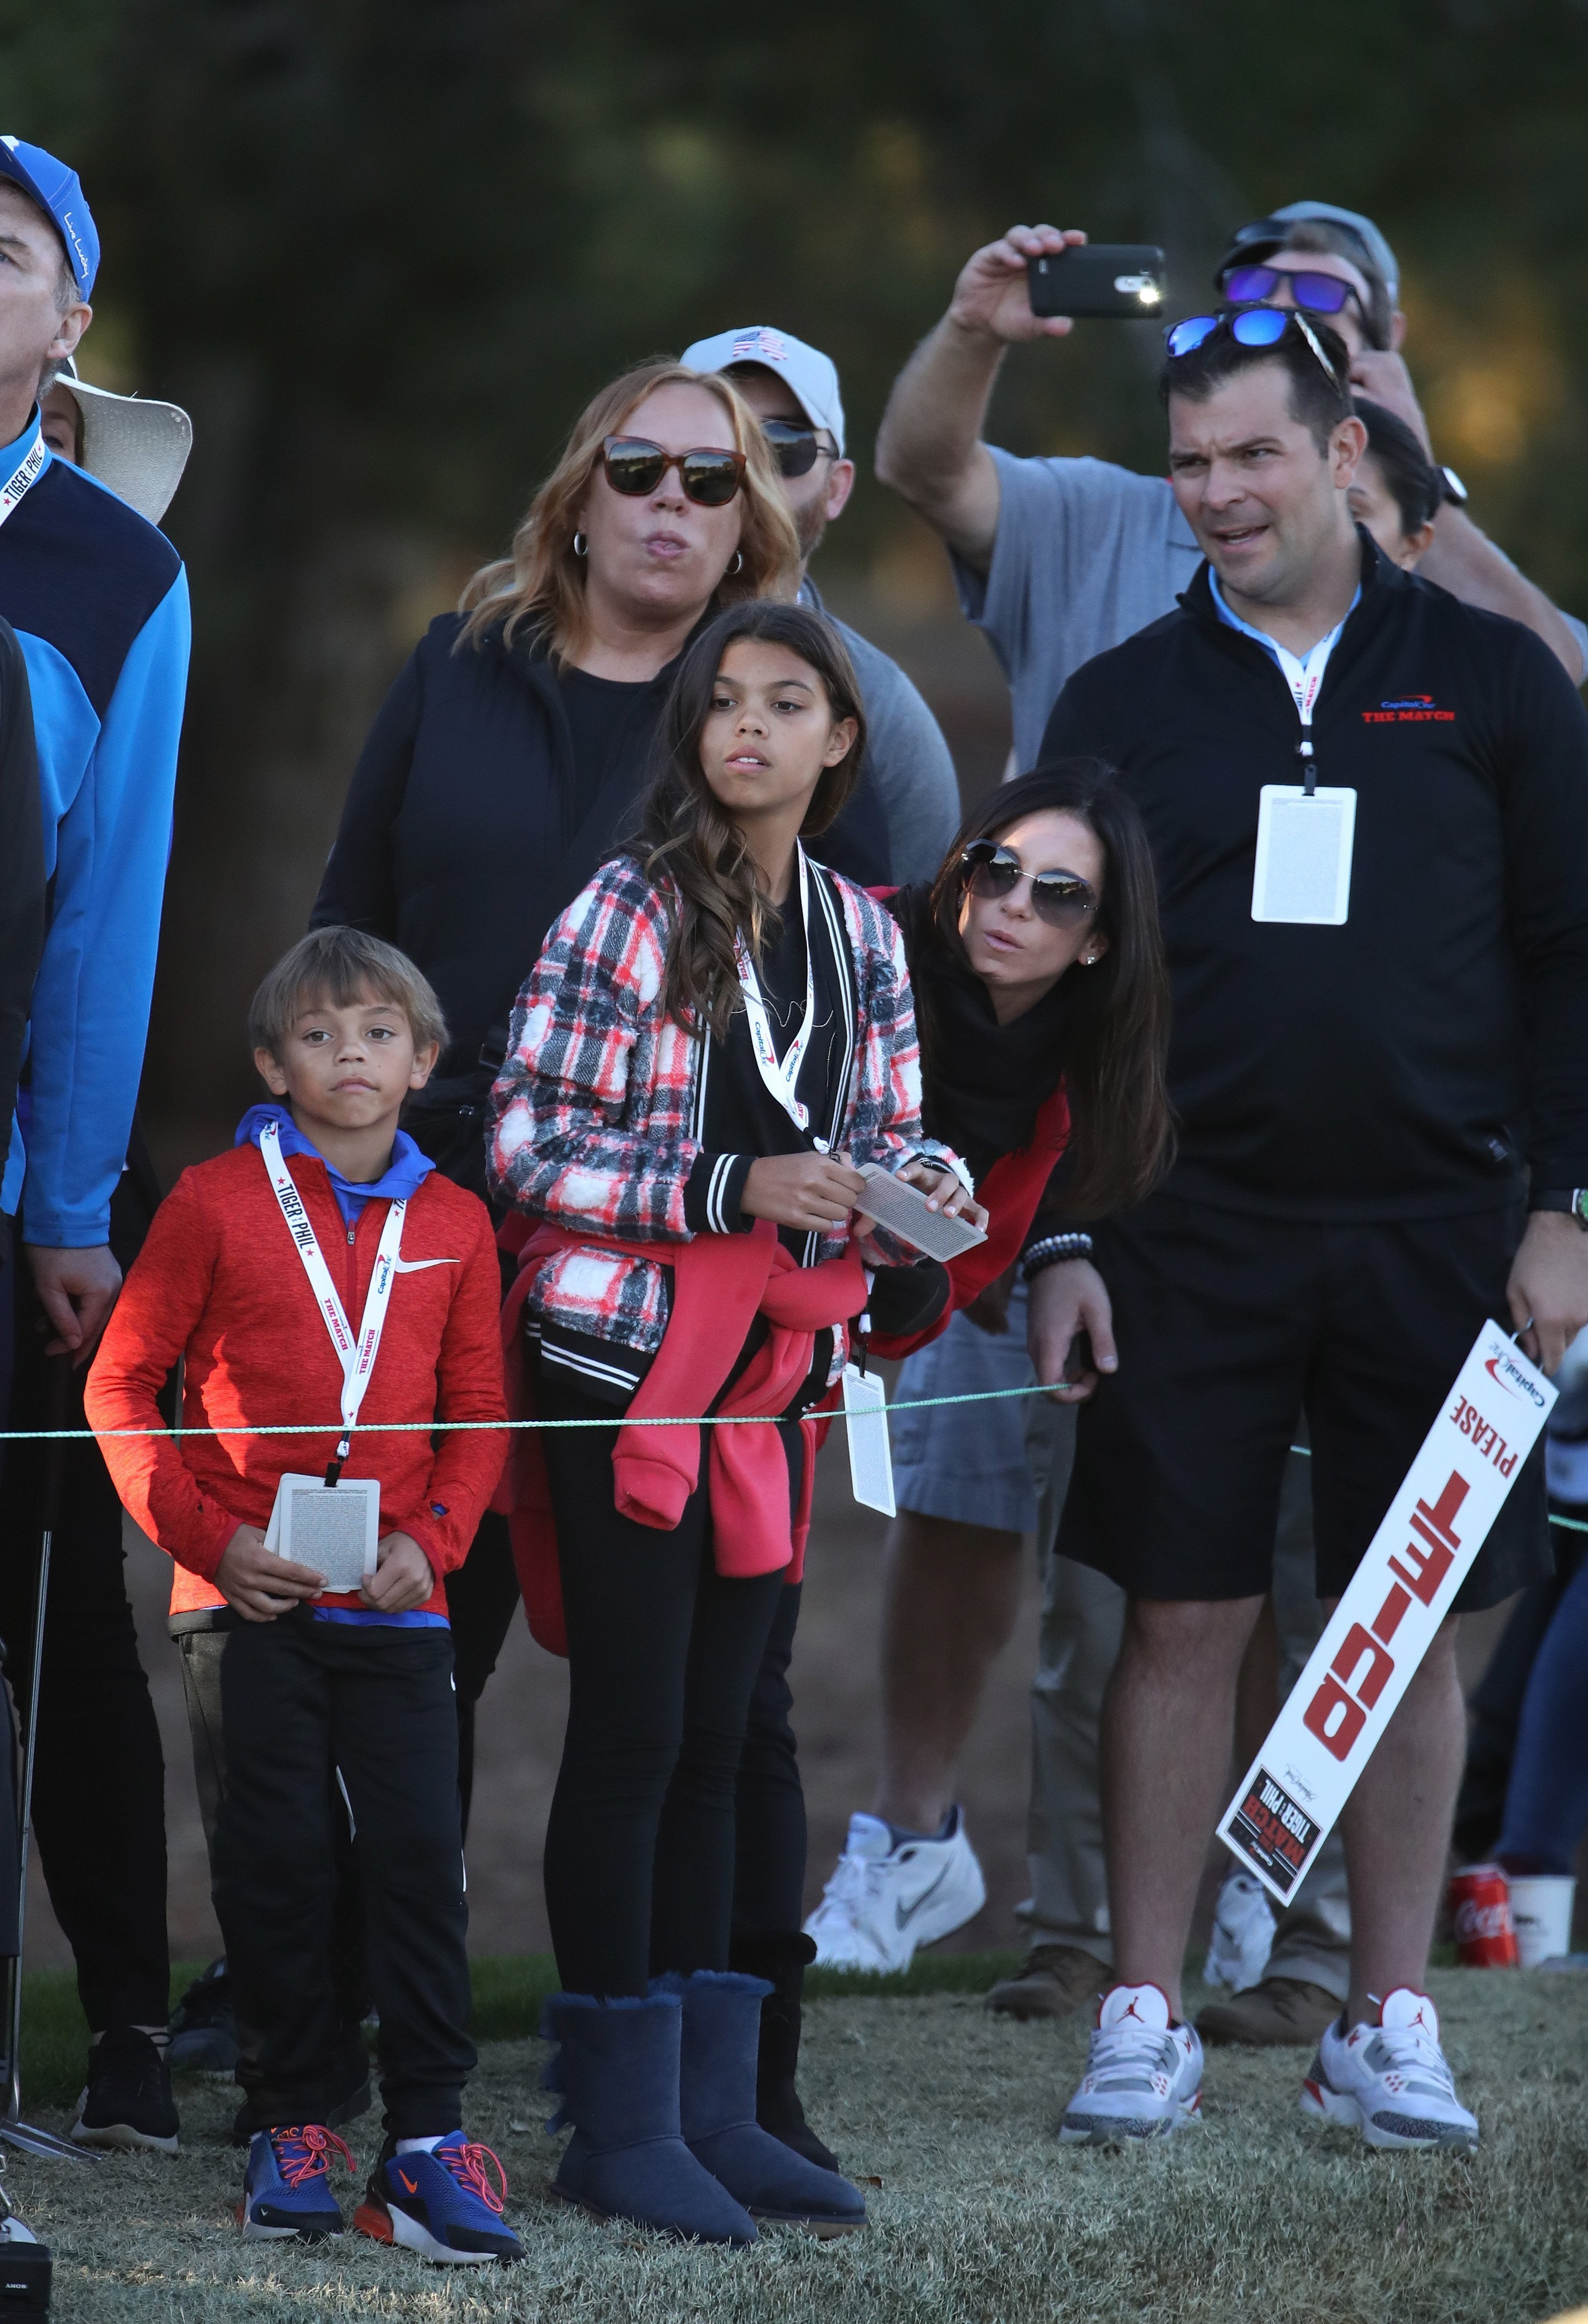 Erica Herman, girlfriend of Tiger Woods, and his children Sam and Charlie look on during The Match: Tiger vs Phil at Shadow Creek Golf Course on November 23, 2018, in Las Vegas, Nevada. | Source: Getty Images.